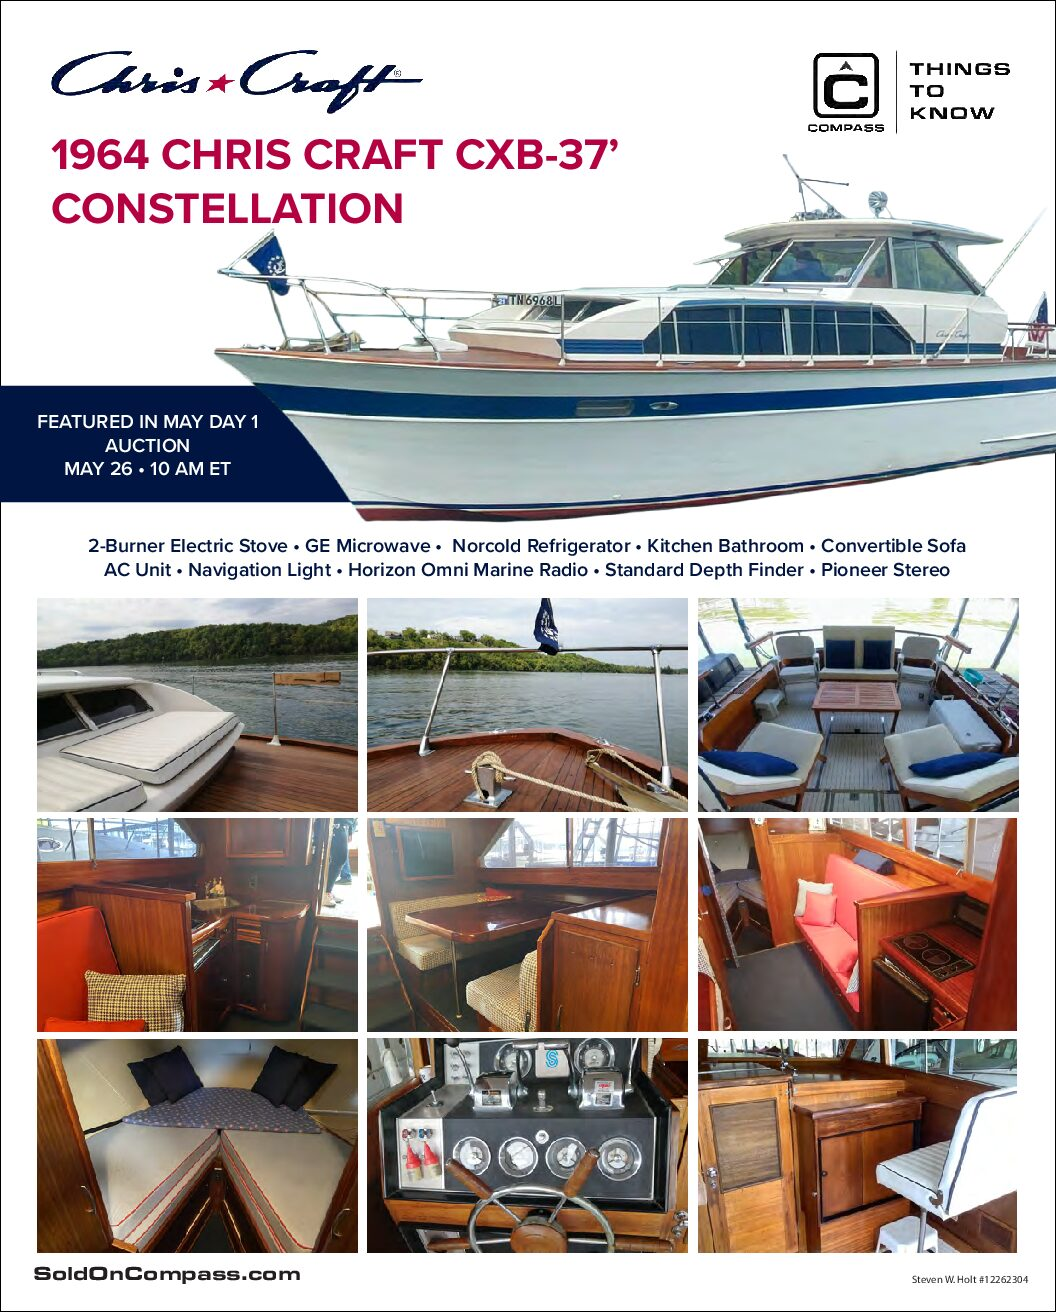 1964 Chris Craft Constellation Boat Interior Features